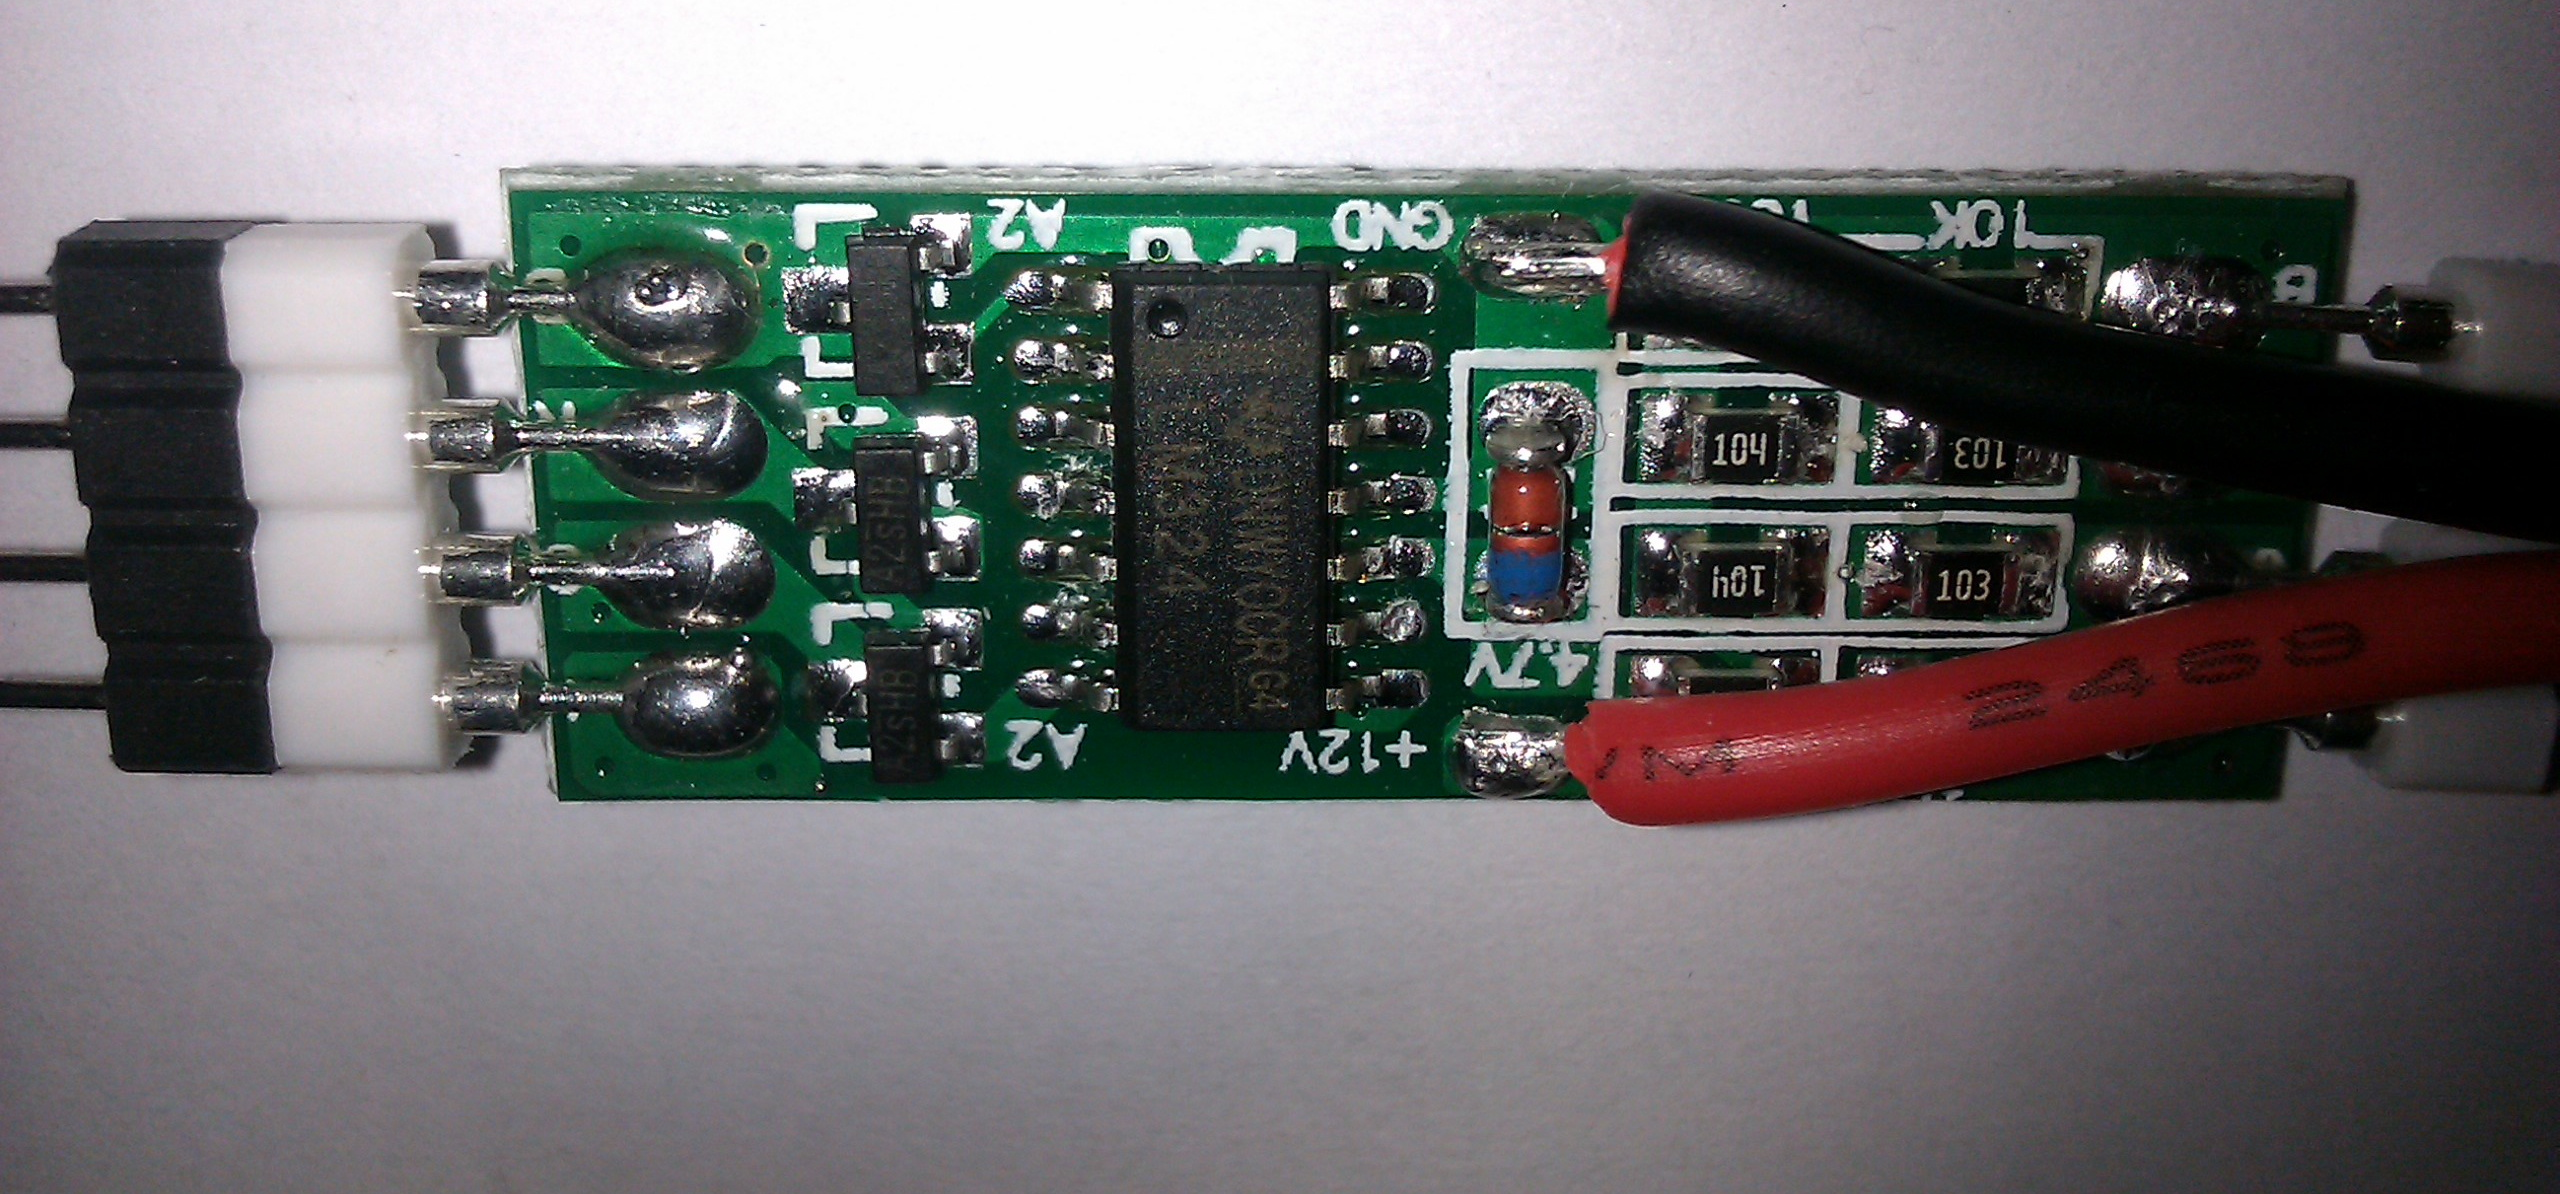 Tearing Down A Rgb Led Strip Amplifier To Magnify Schematic Circuit Diagram Tv Outside Lm324 Op Amp